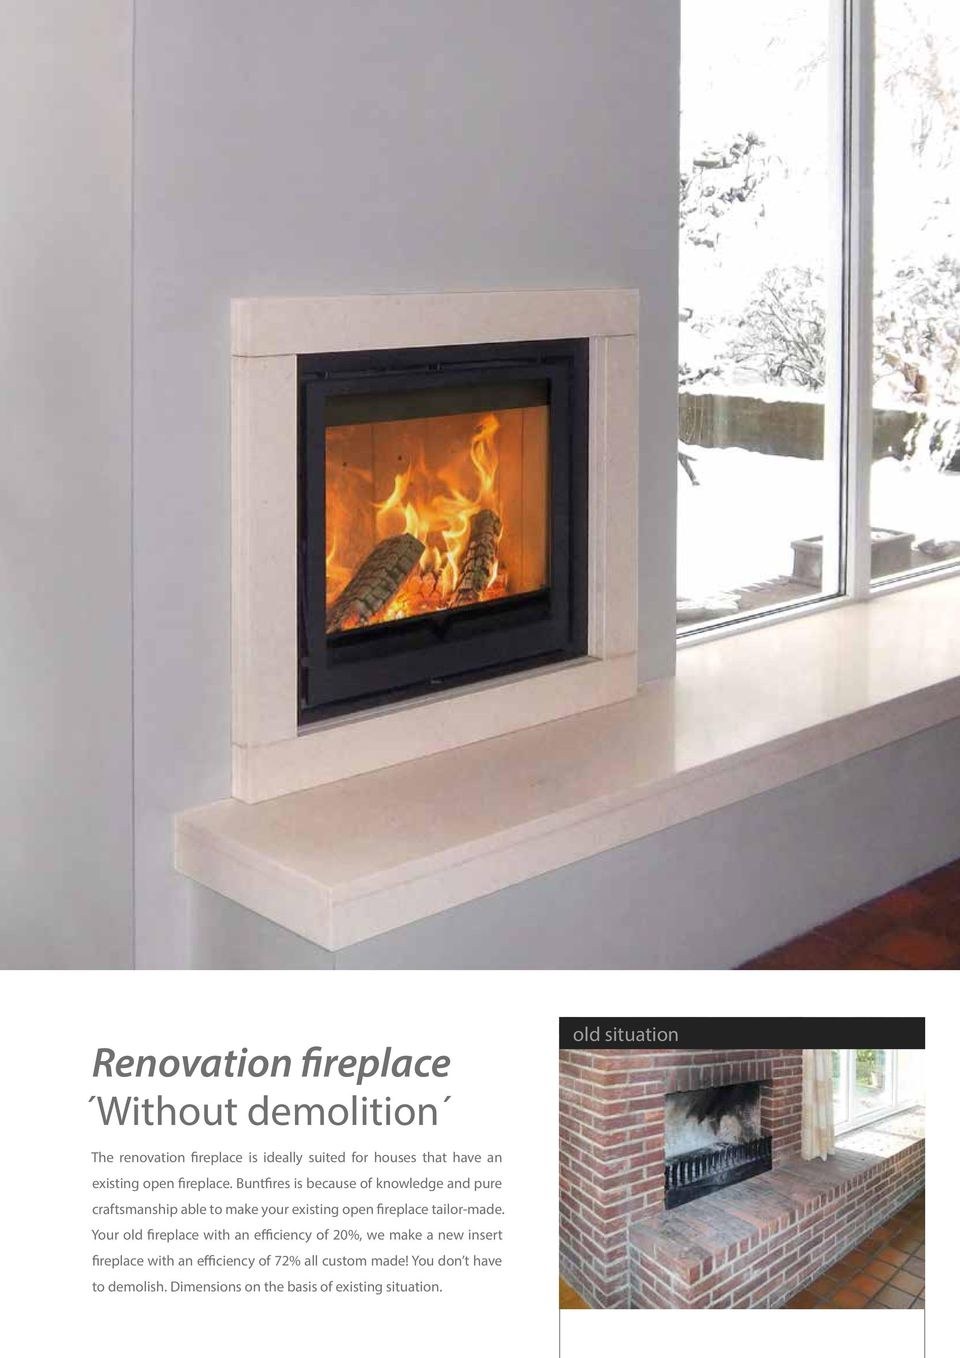 Buntfires is because of knowledge and pure craftsmanship able to make your existing open fireplace tailor-made.